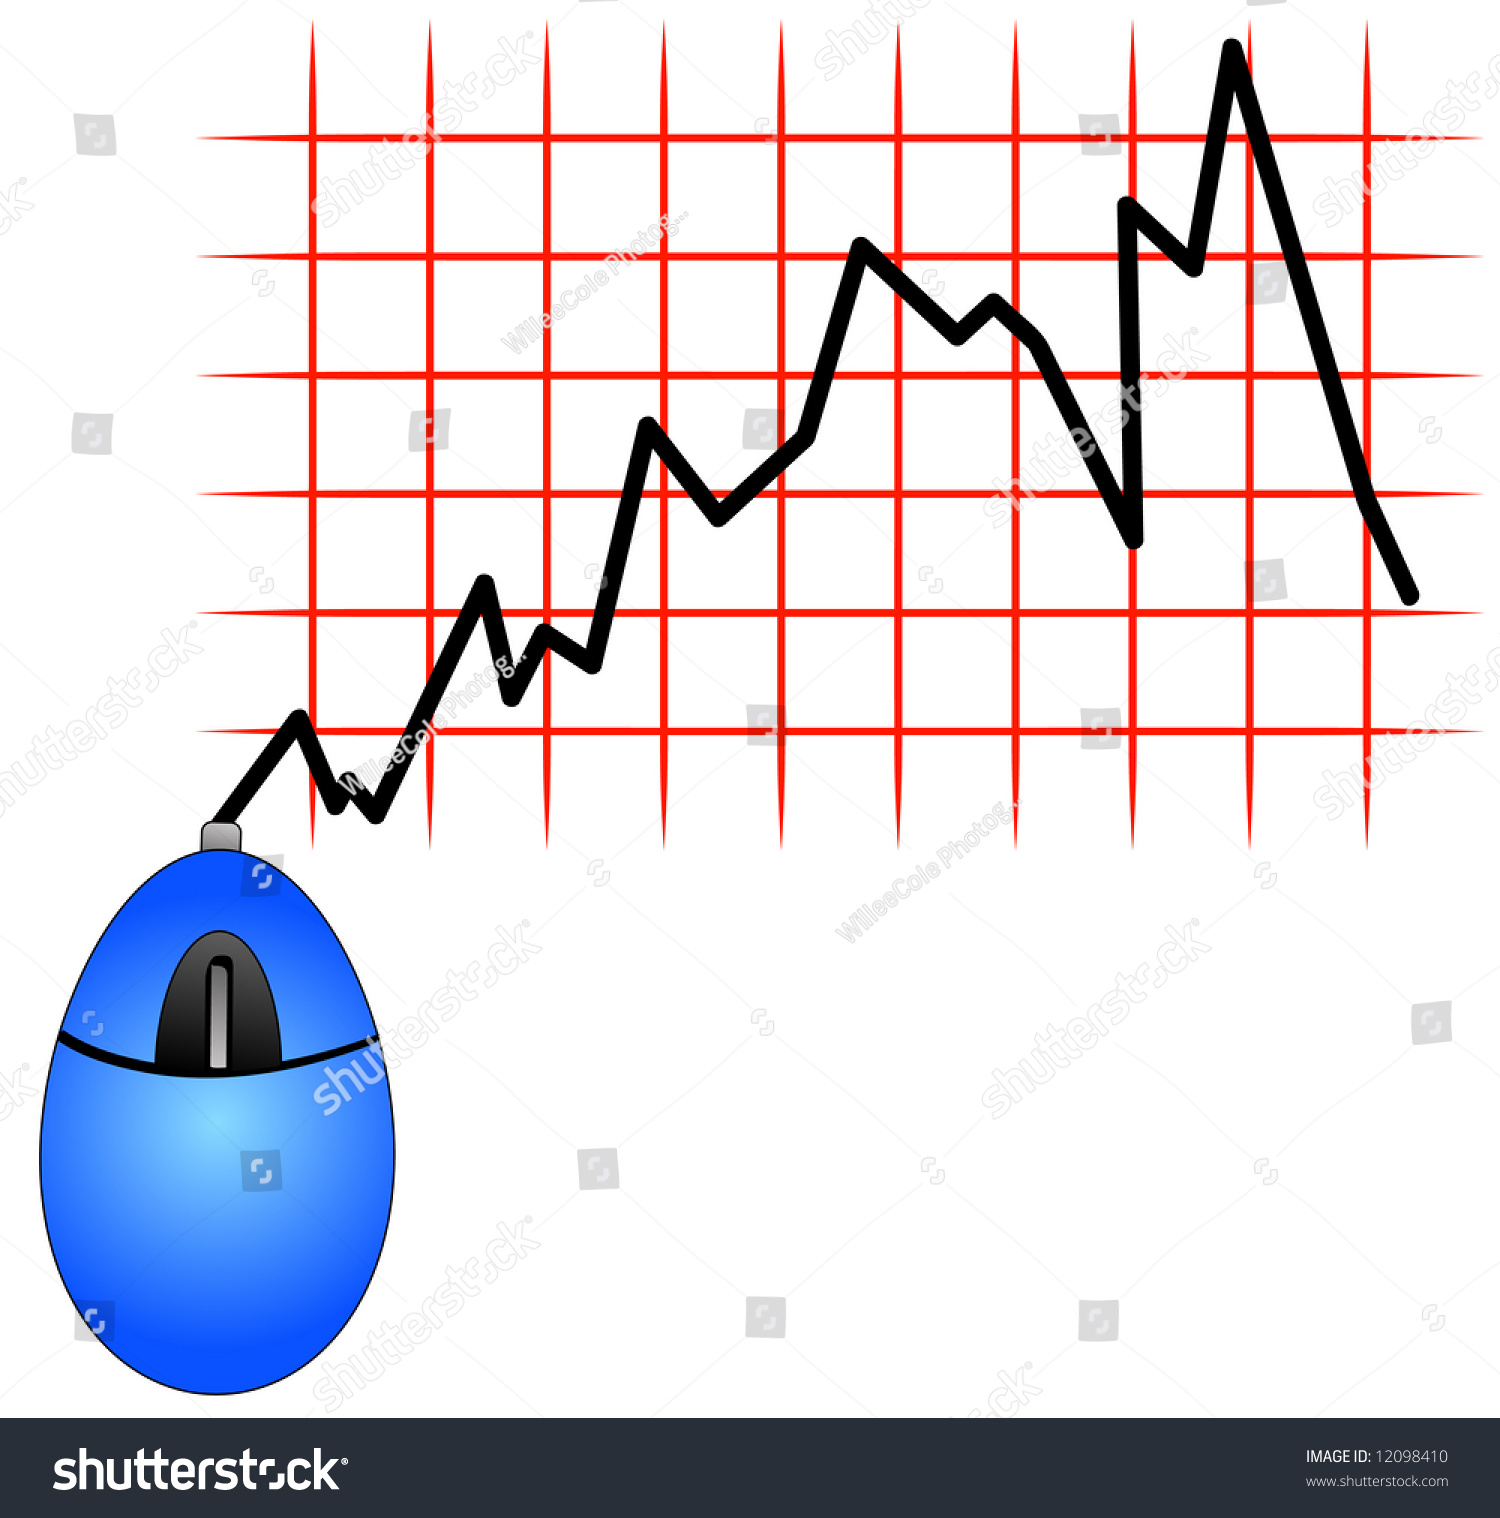 hight resolution of computer mouse management on a success diagram stock image image blue computer mouse cord showing fluctuation